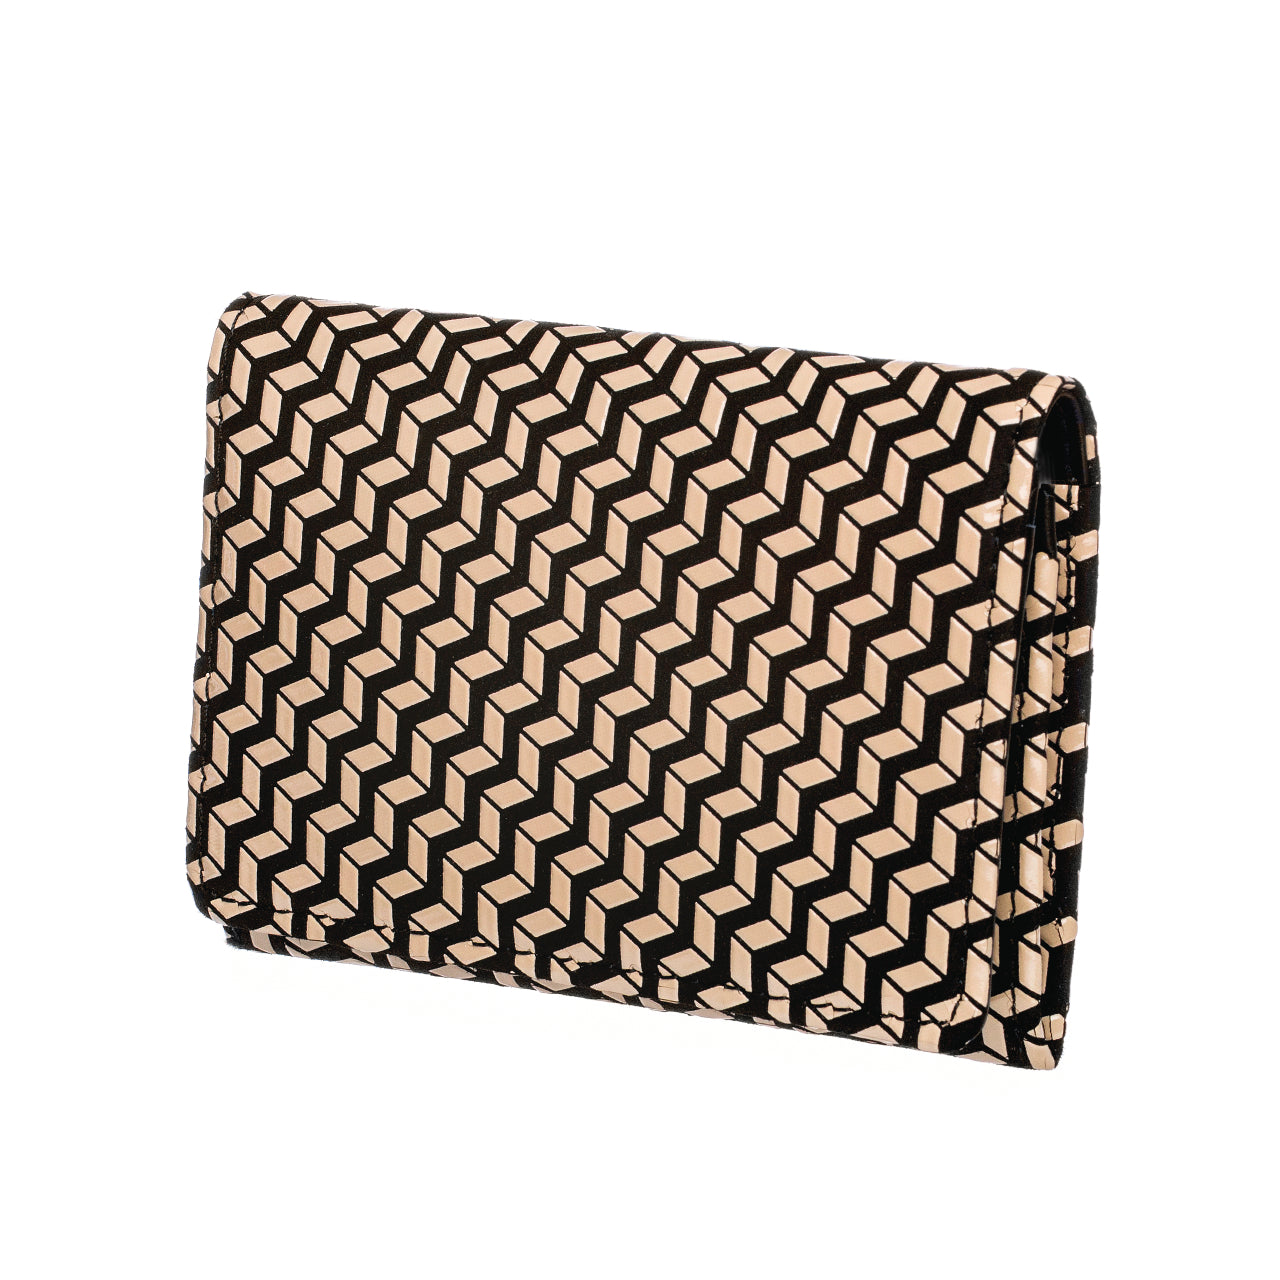 INDEN BUSINESS CARD CASE B x I Chevron